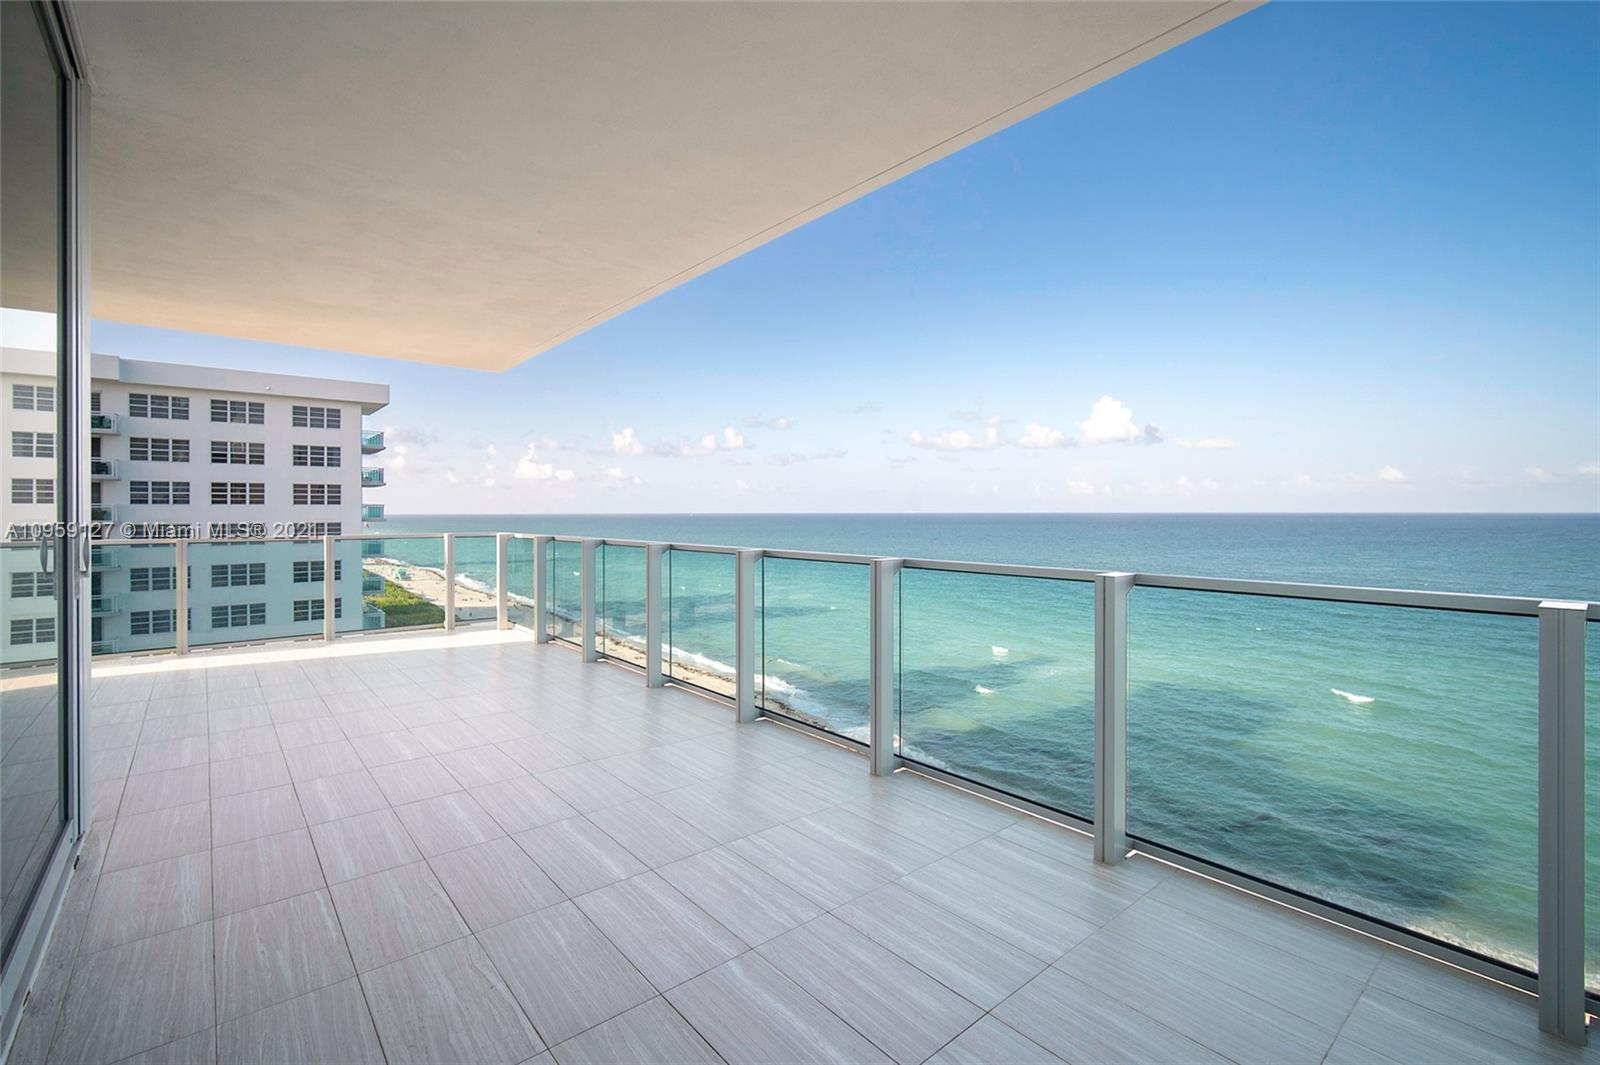 L'Atelier Miami Beach exclusively designed by Holly Hunt. This flow through residence is 1 of only 25 total residences & offers direct ocean and bay/city views with 2,300 SF interior, 1,171 SF terrace with a whirlpool spa, private elevator, & 10' ceilings. L'Atelier offers 24hr valet, pool & beach attendant, oceanfront infinity edge swimming pool, poolside cabanas, bar, whirlpool spa, hammock garden, spa facility w/sauna & hammam, & double height state-of-the-art gym. RENTED UNTIL MARCH 1